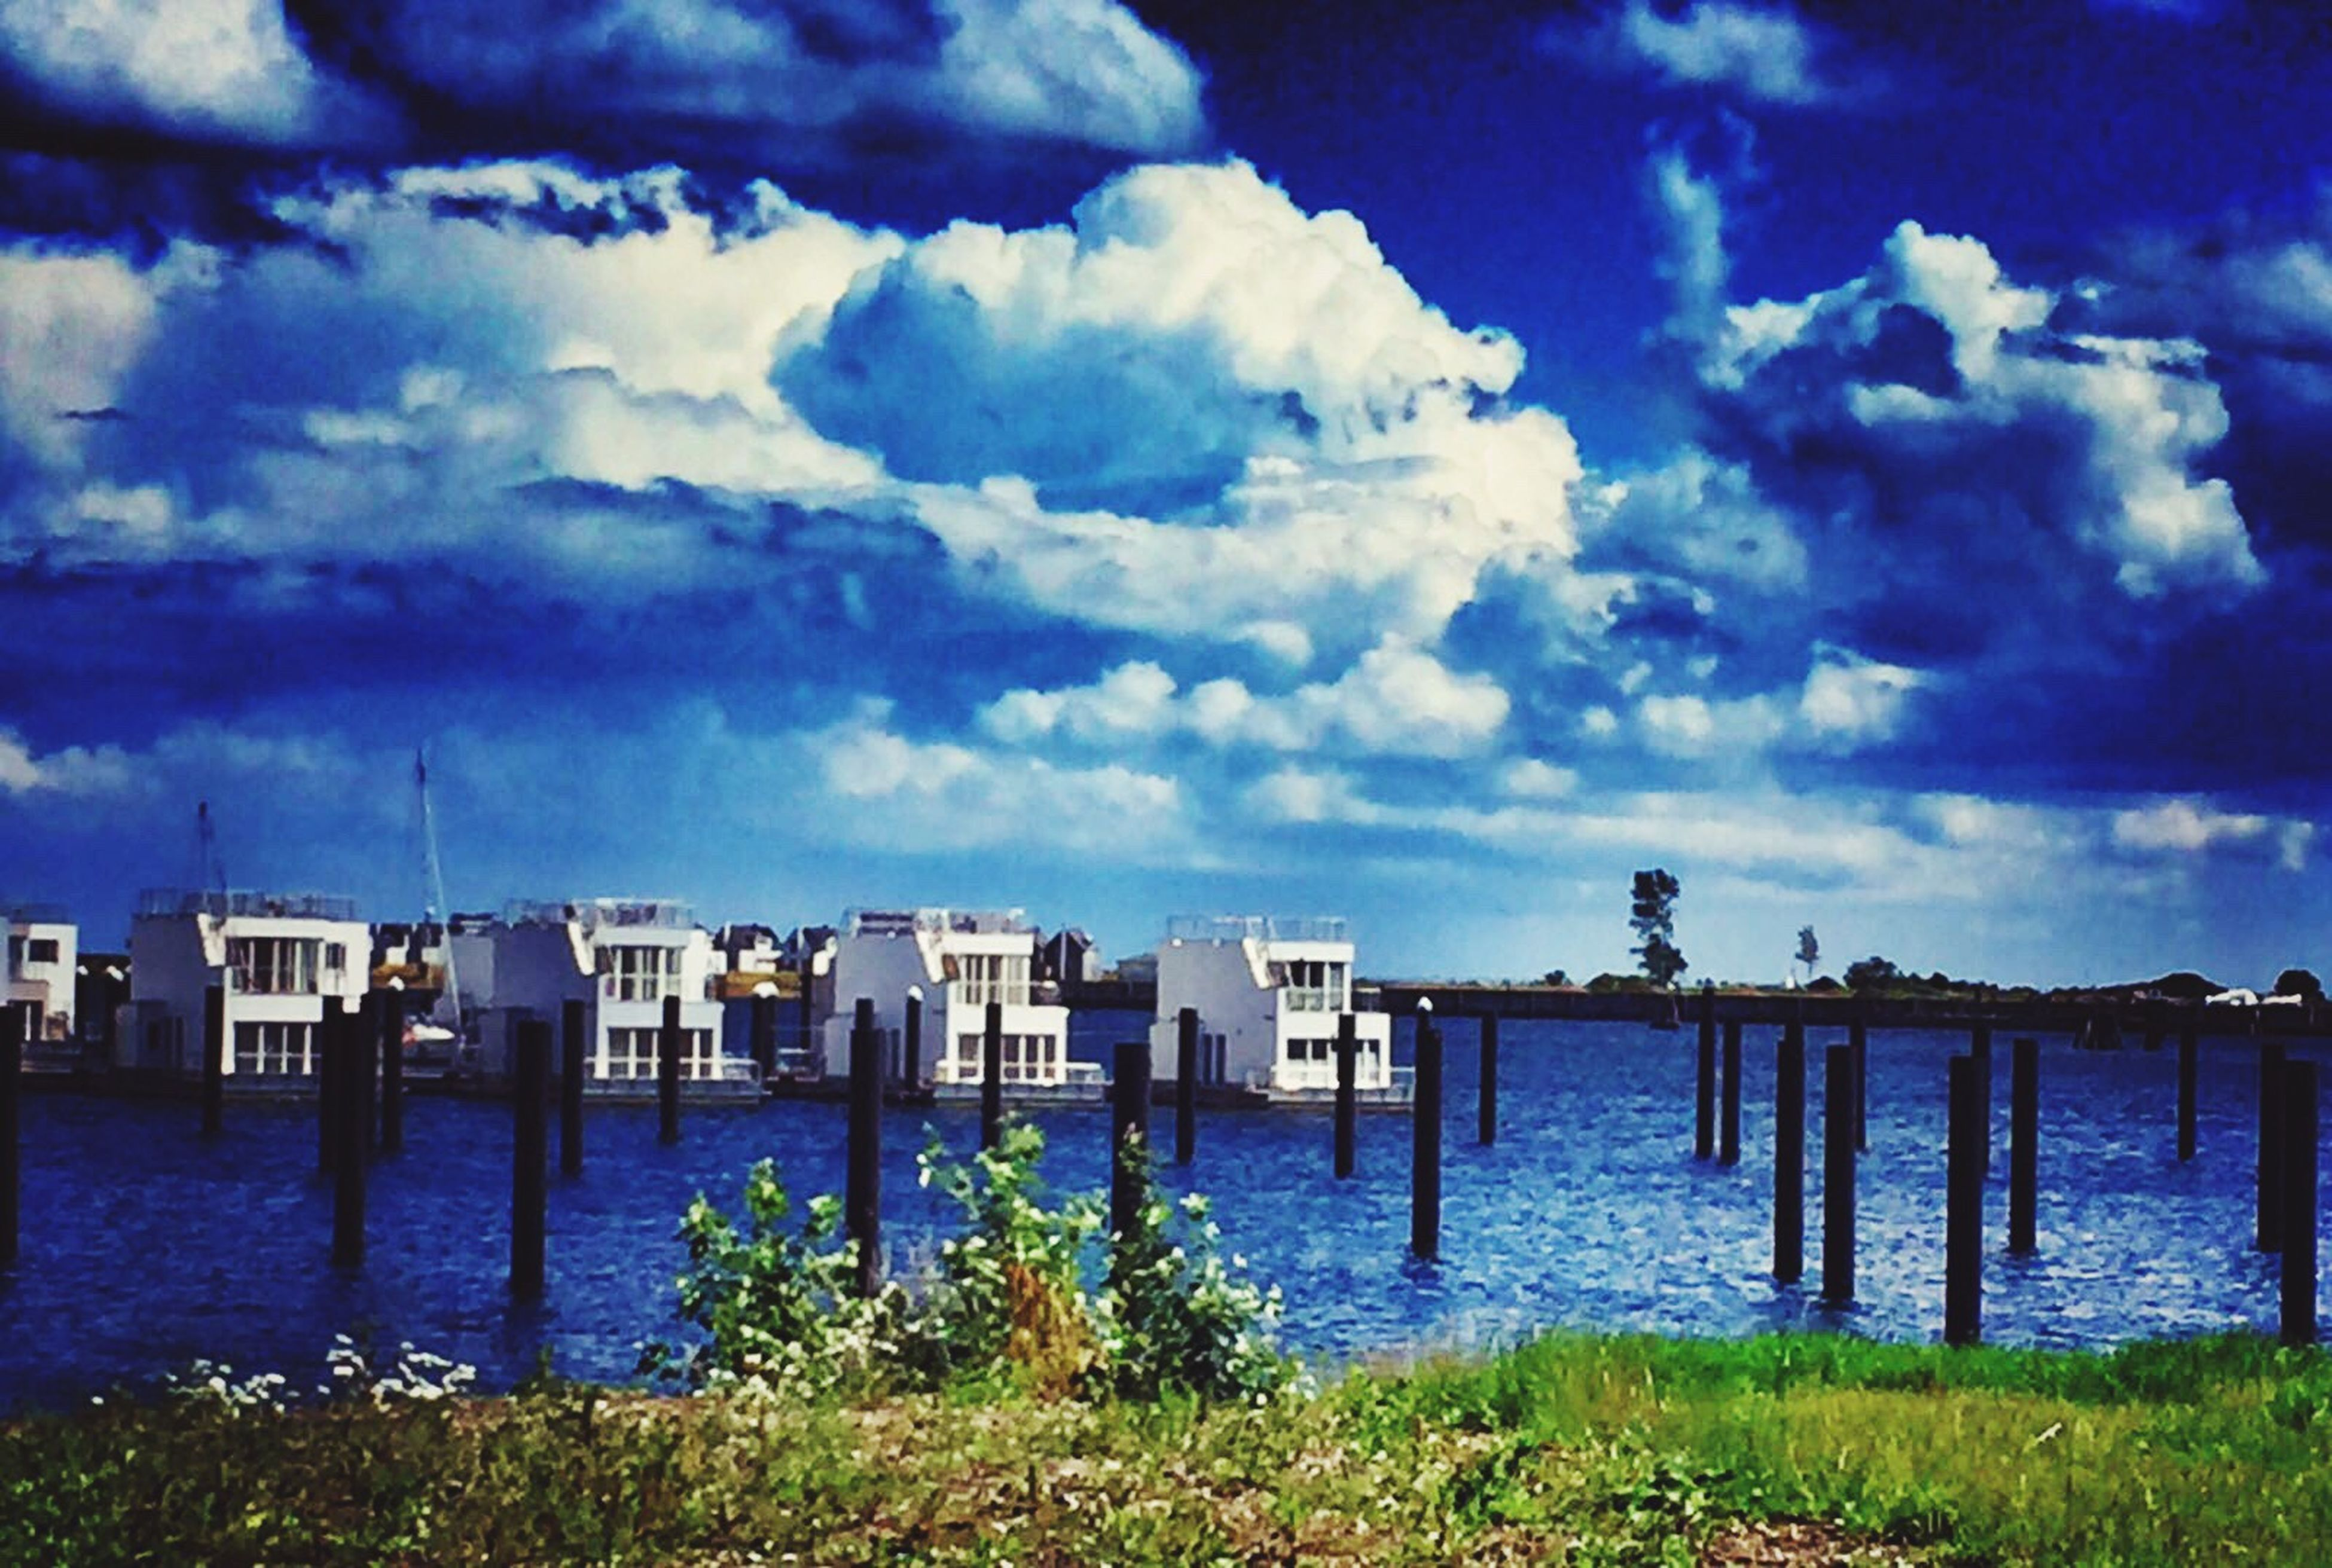 sky, water, cloud - sky, built structure, river, architecture, blue, cloudscape, plant, day, riverbank, outdoors, nature, tranquility, scenics, tranquil scene, cloudy, no people, dramatic sky, beauty in nature, cumulus cloud